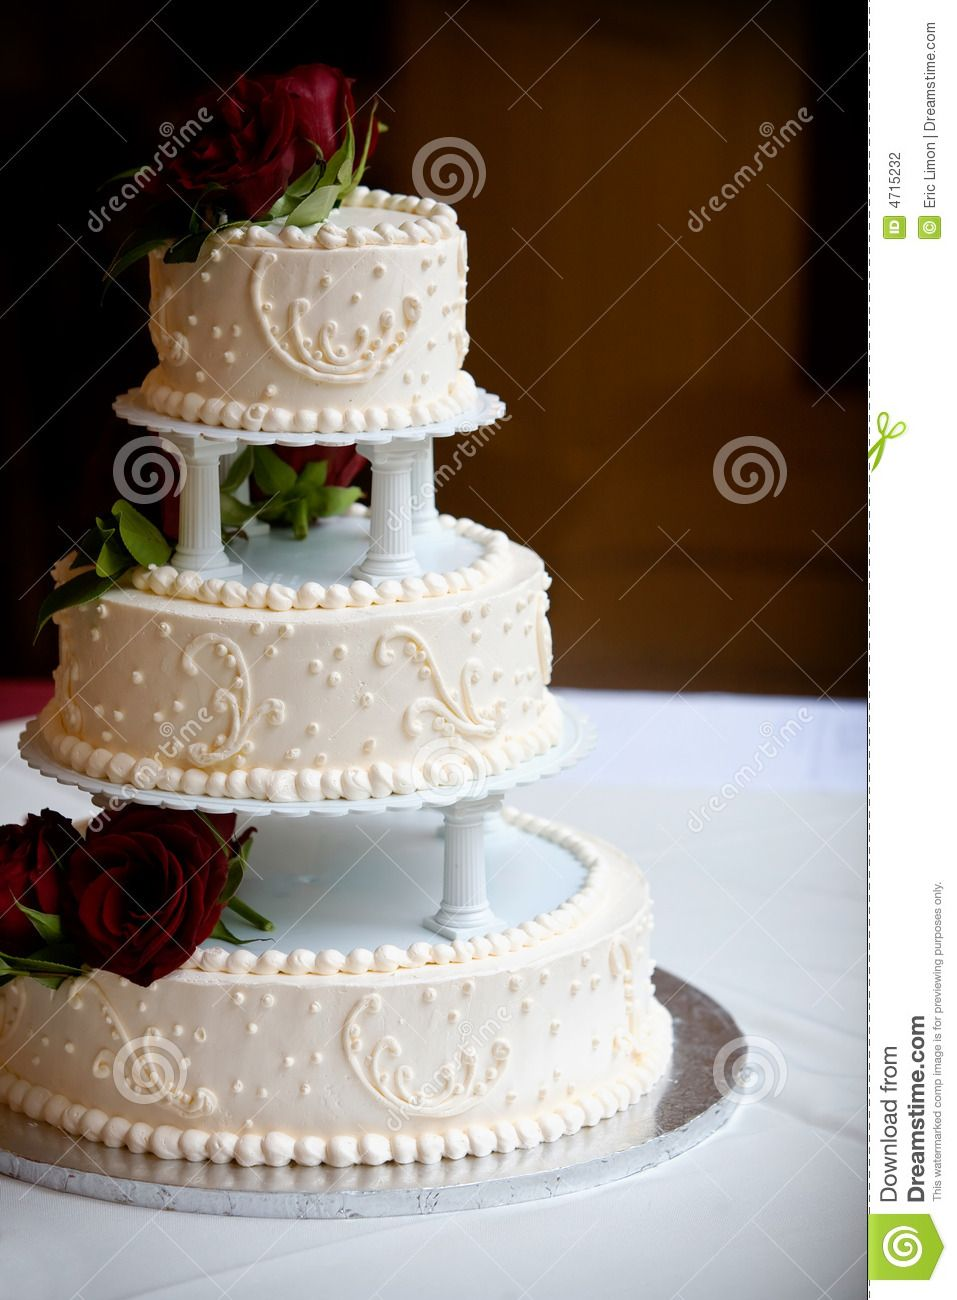 Wedding Cake With Three Tiers From Over 30 Million High Quality Stock Photos